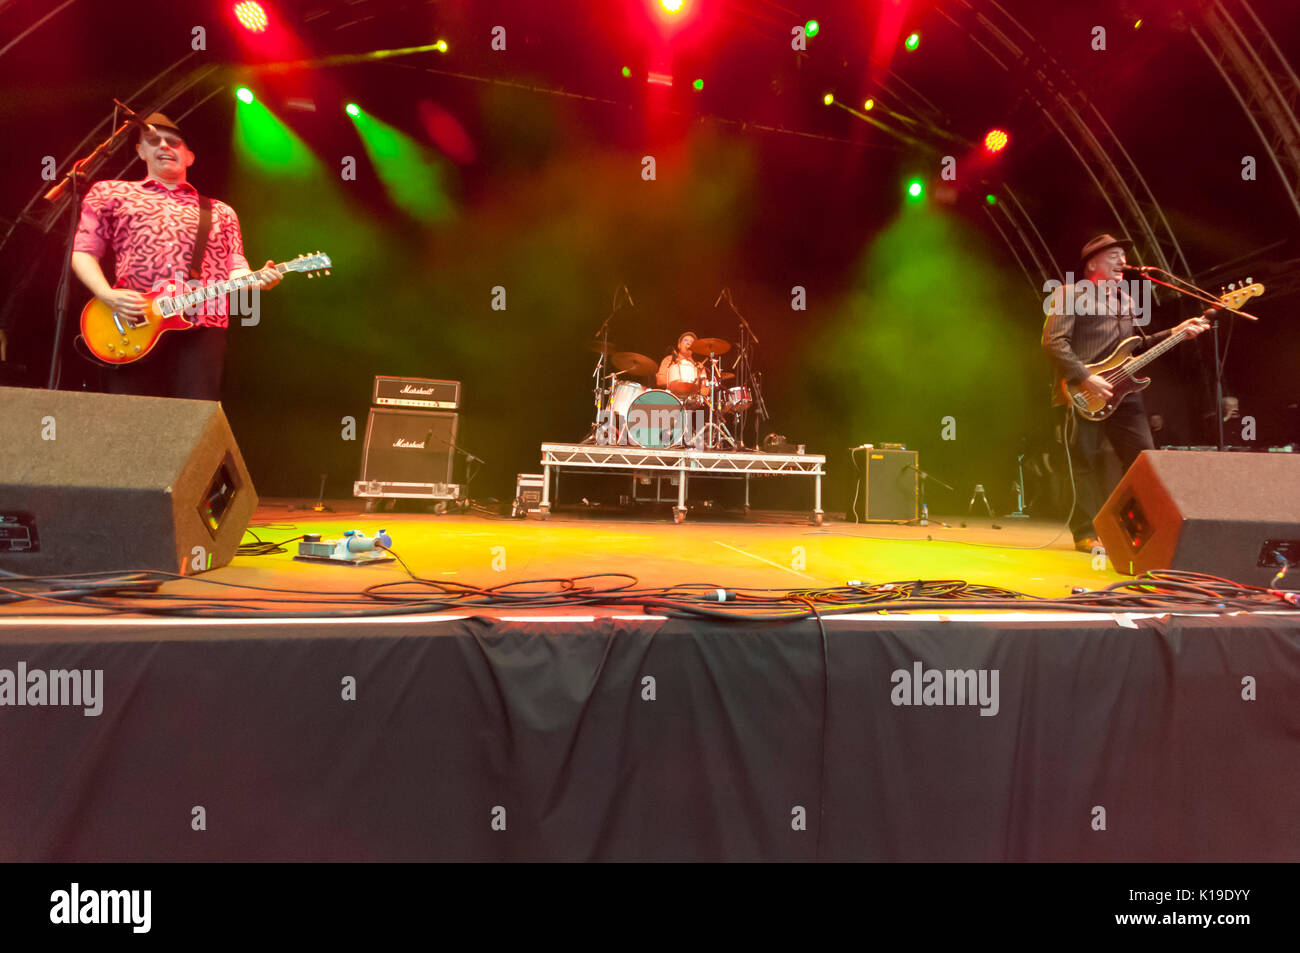 Belfast, Northern Ireland. 26/08/2017 - Punk band The Ruts play Custom House Square festival Stock Photo